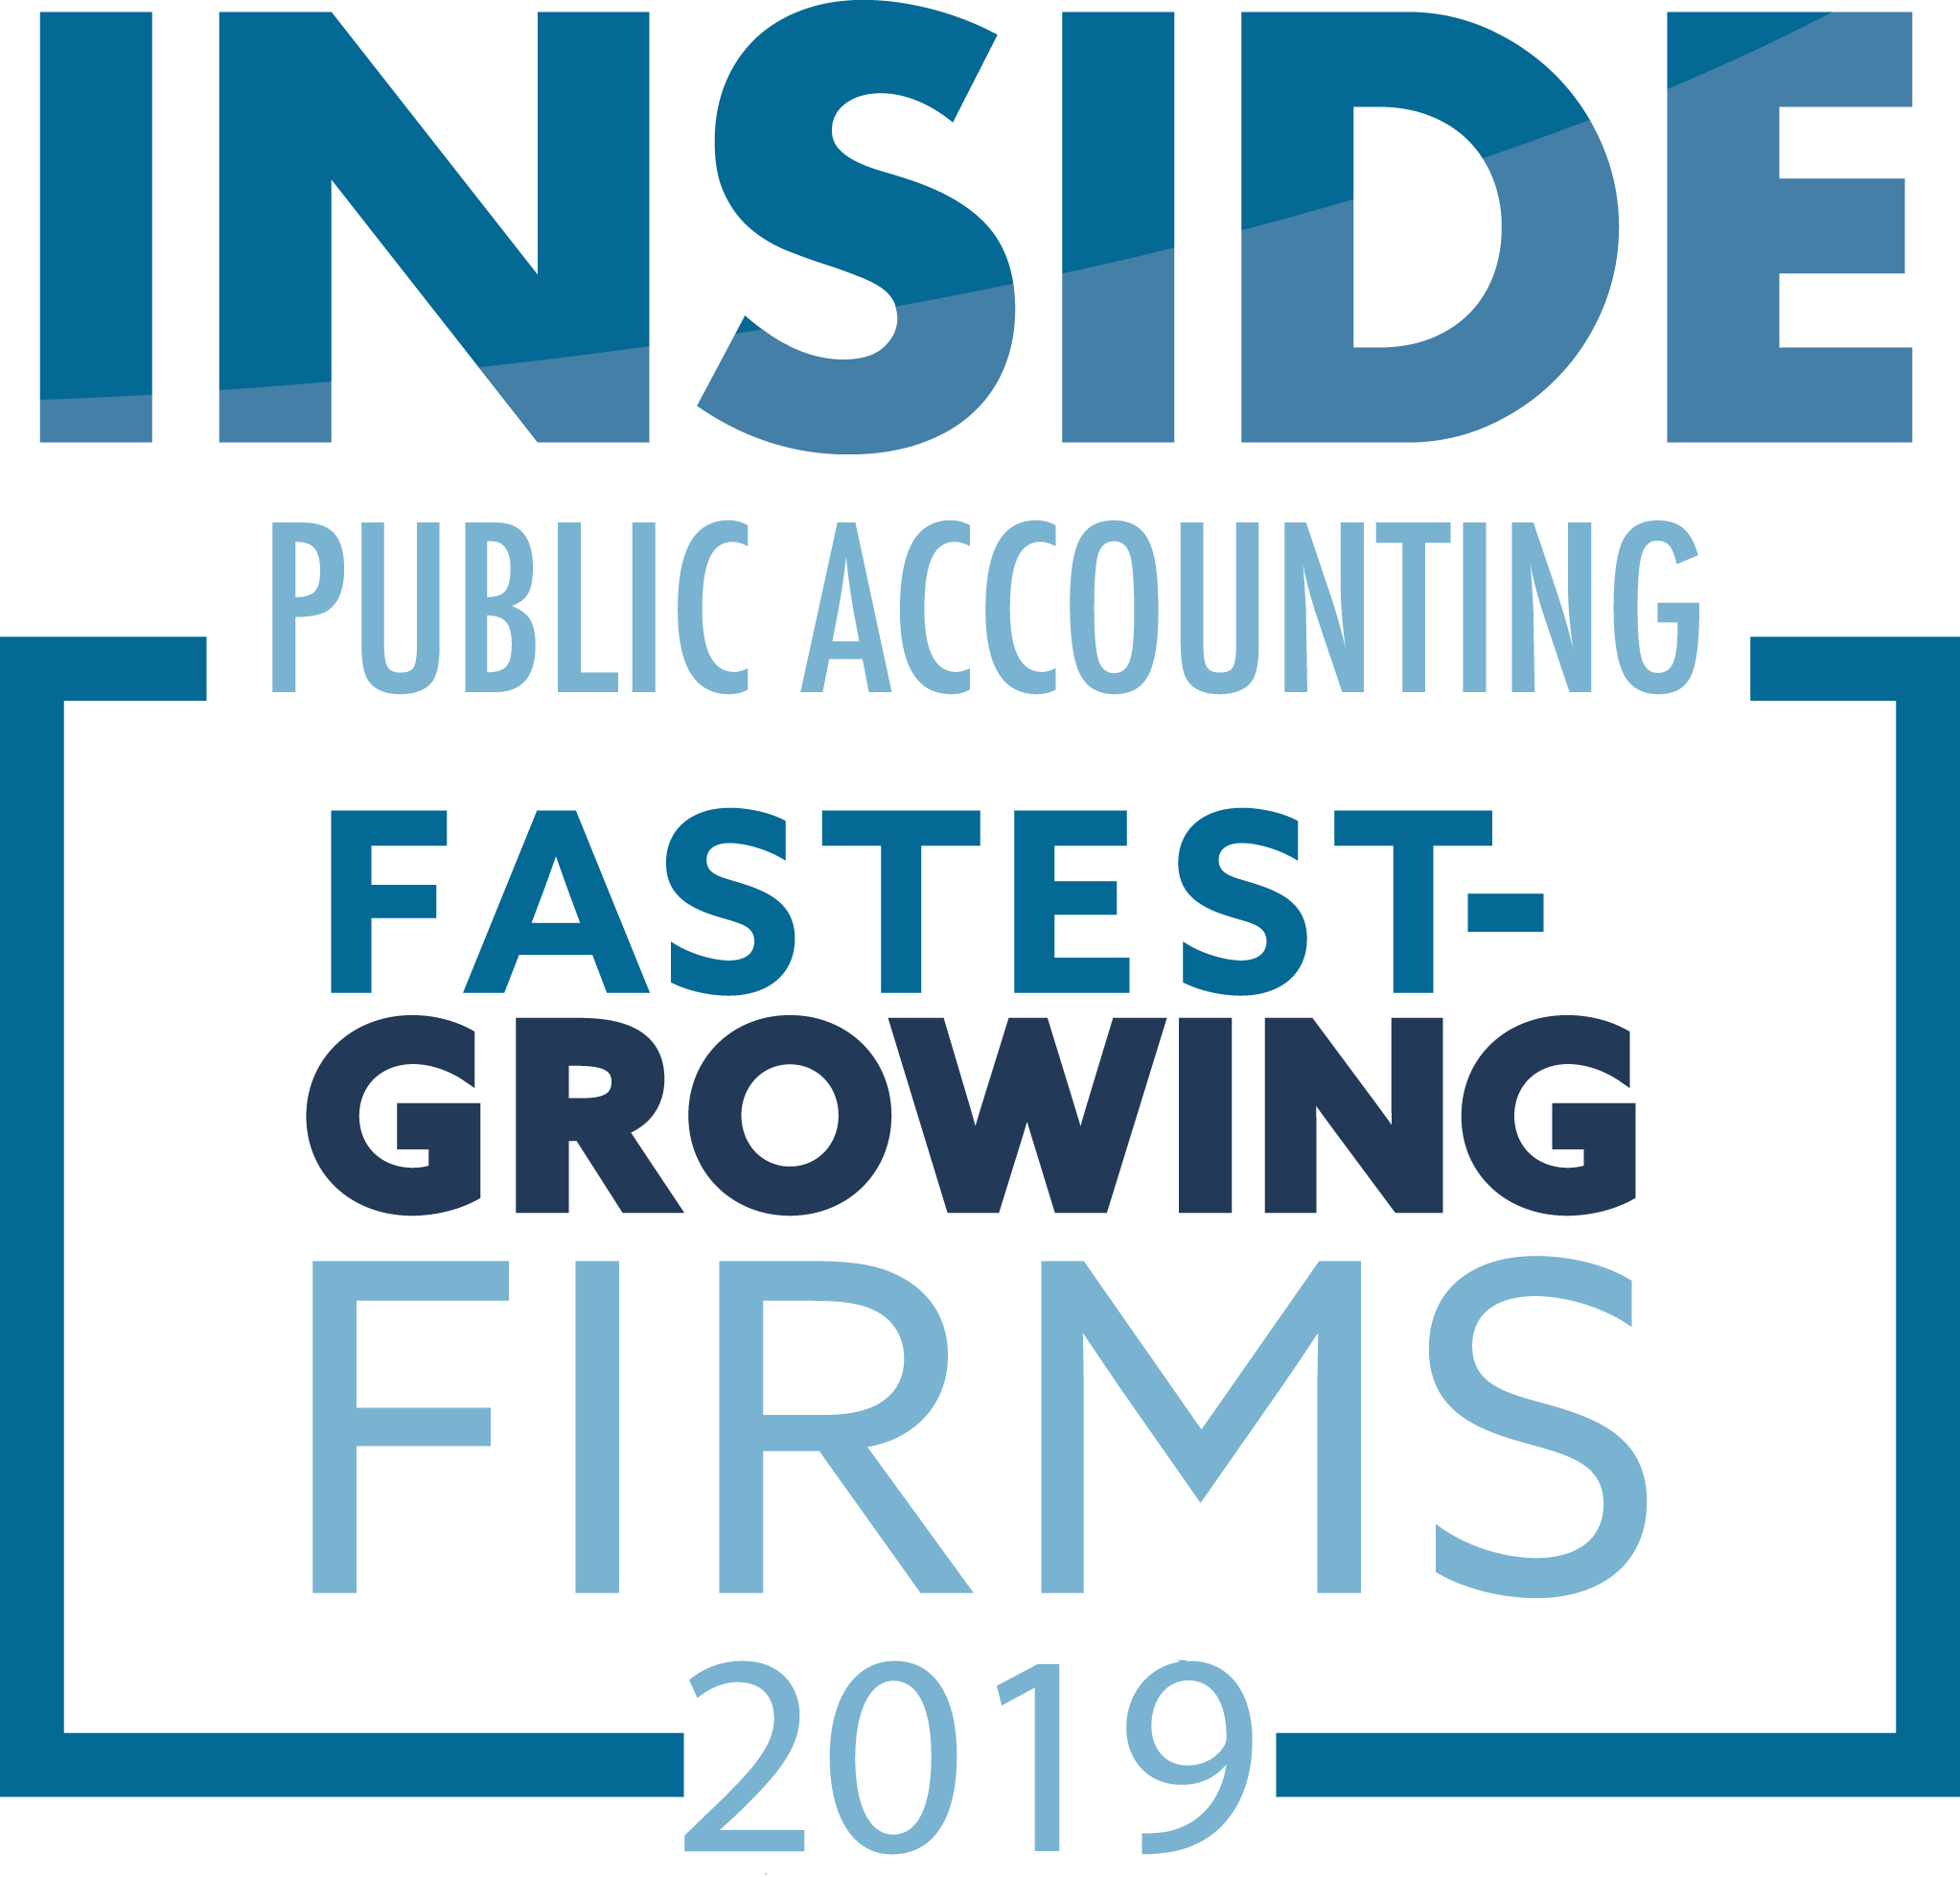 Award- 2019 Fastest Growing Firms